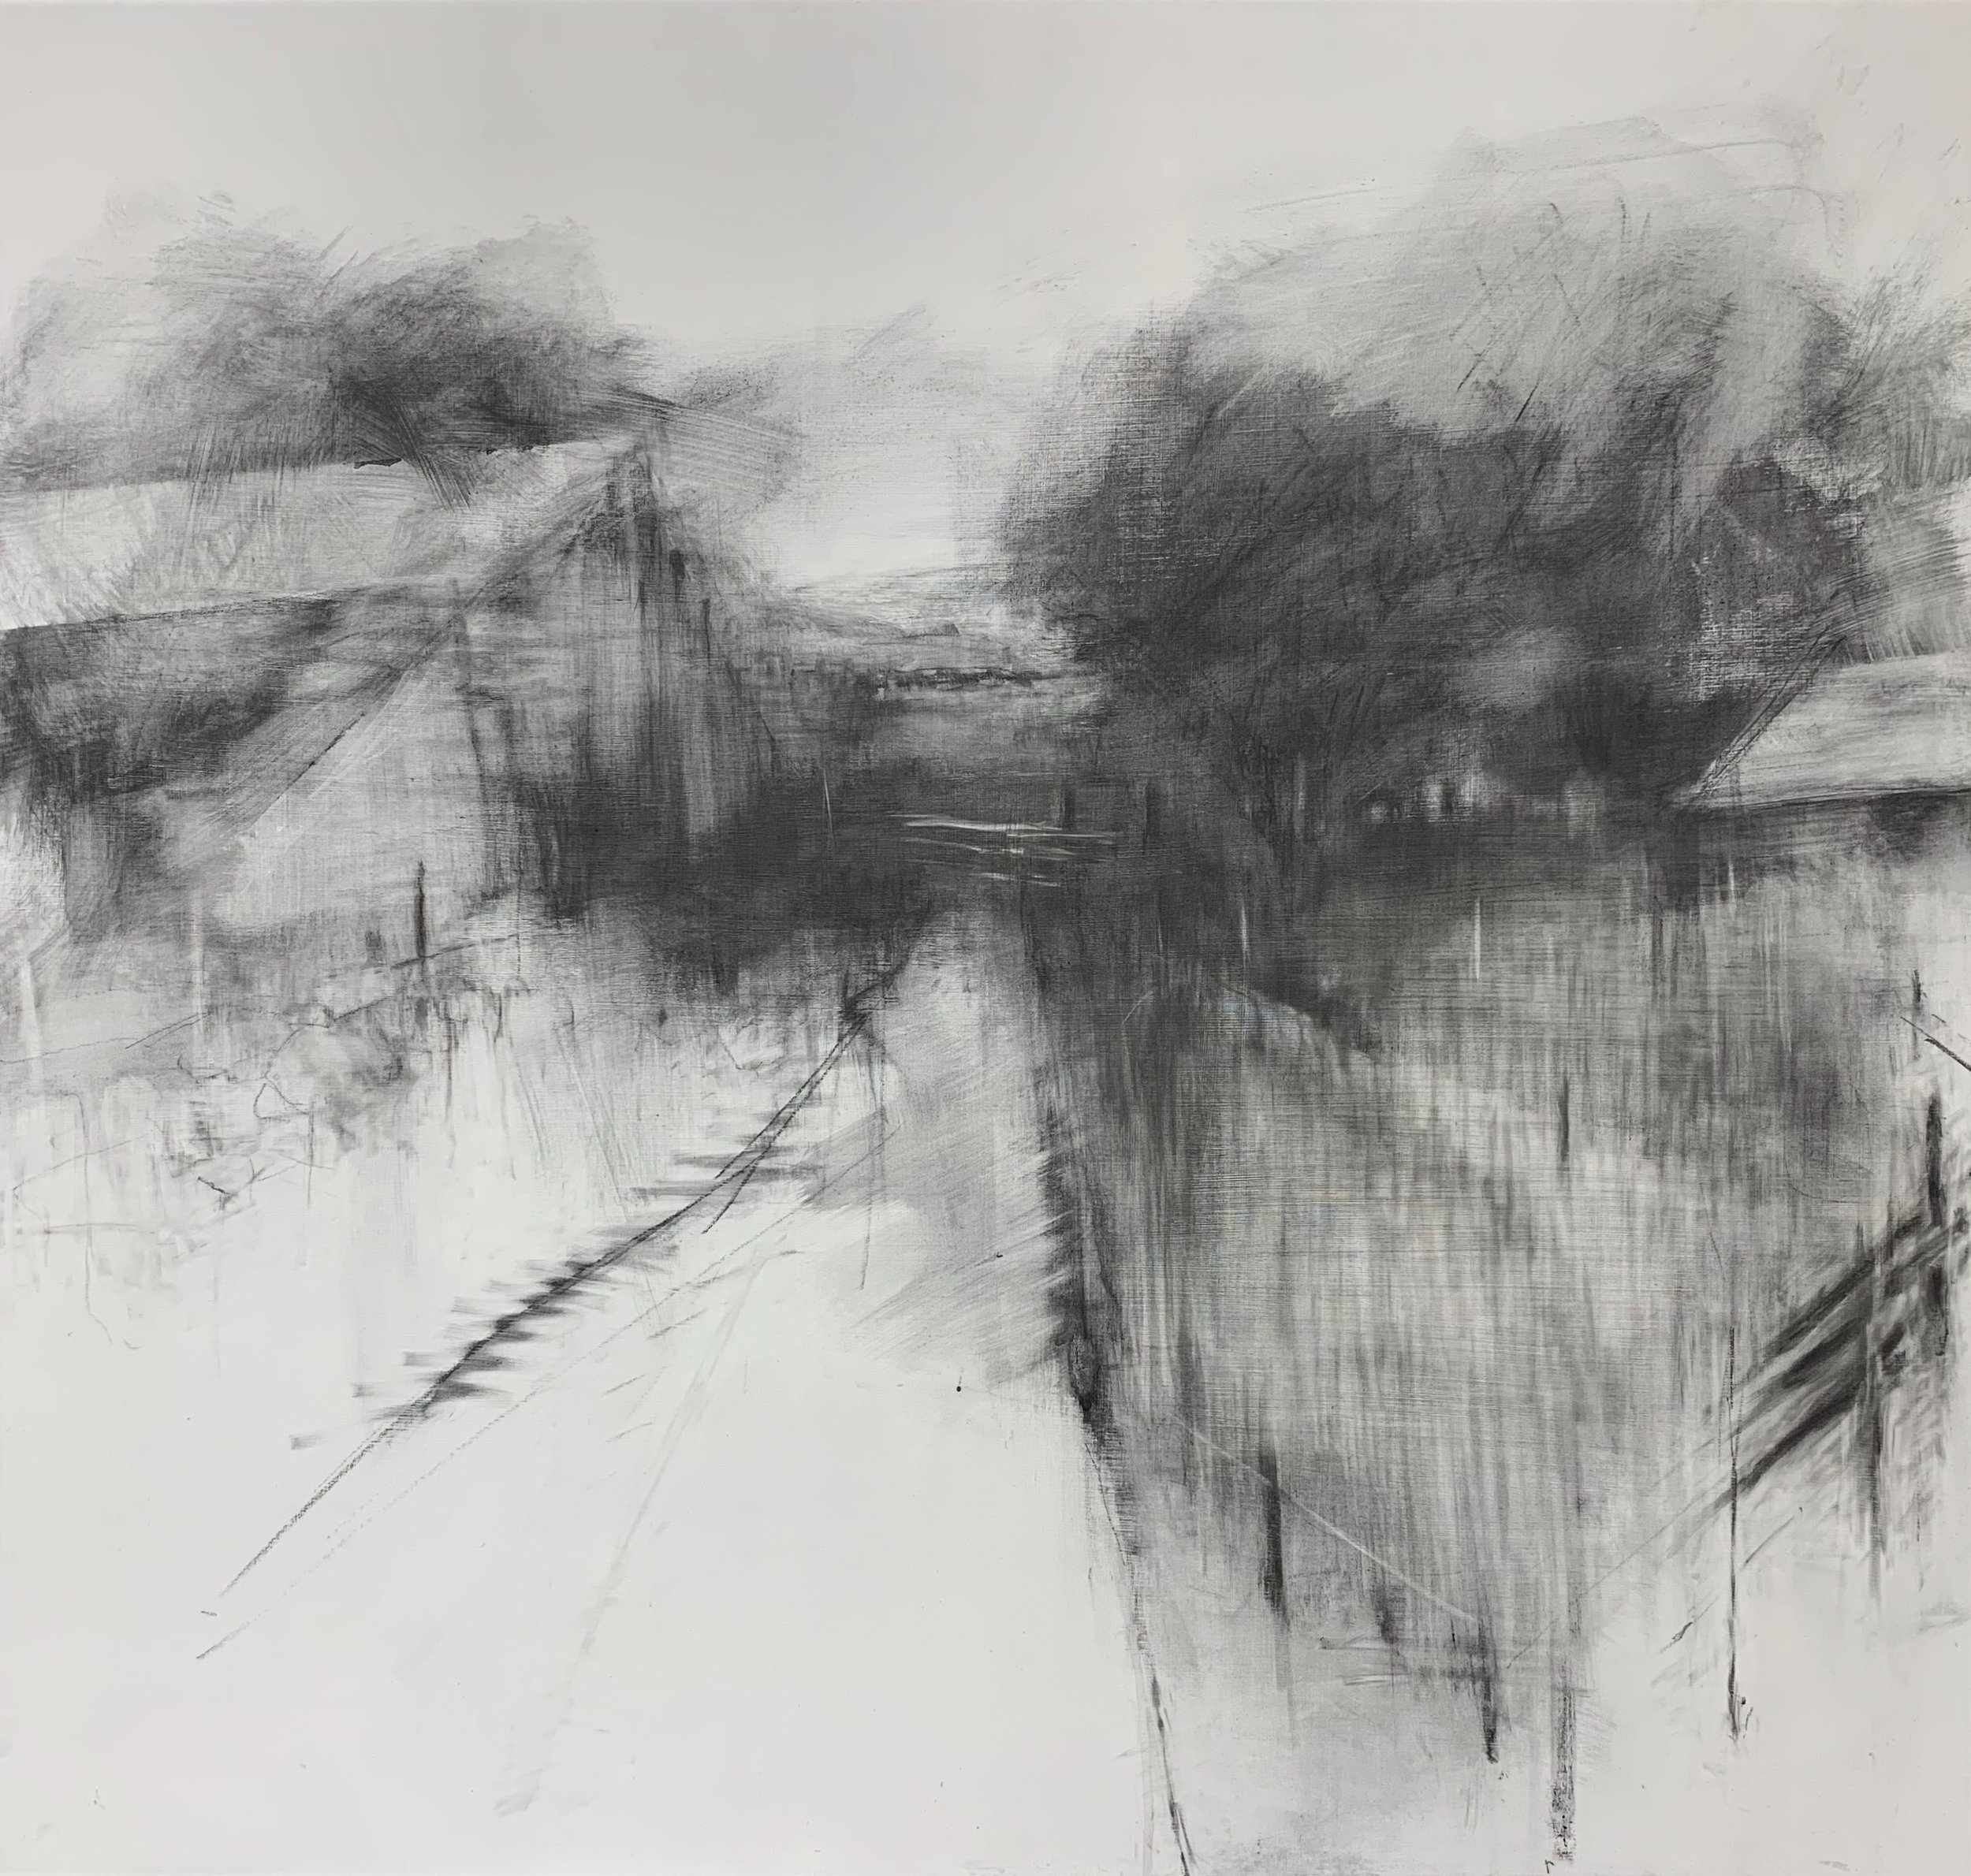 Farm near Lerryn. 2019. Graphite on board.